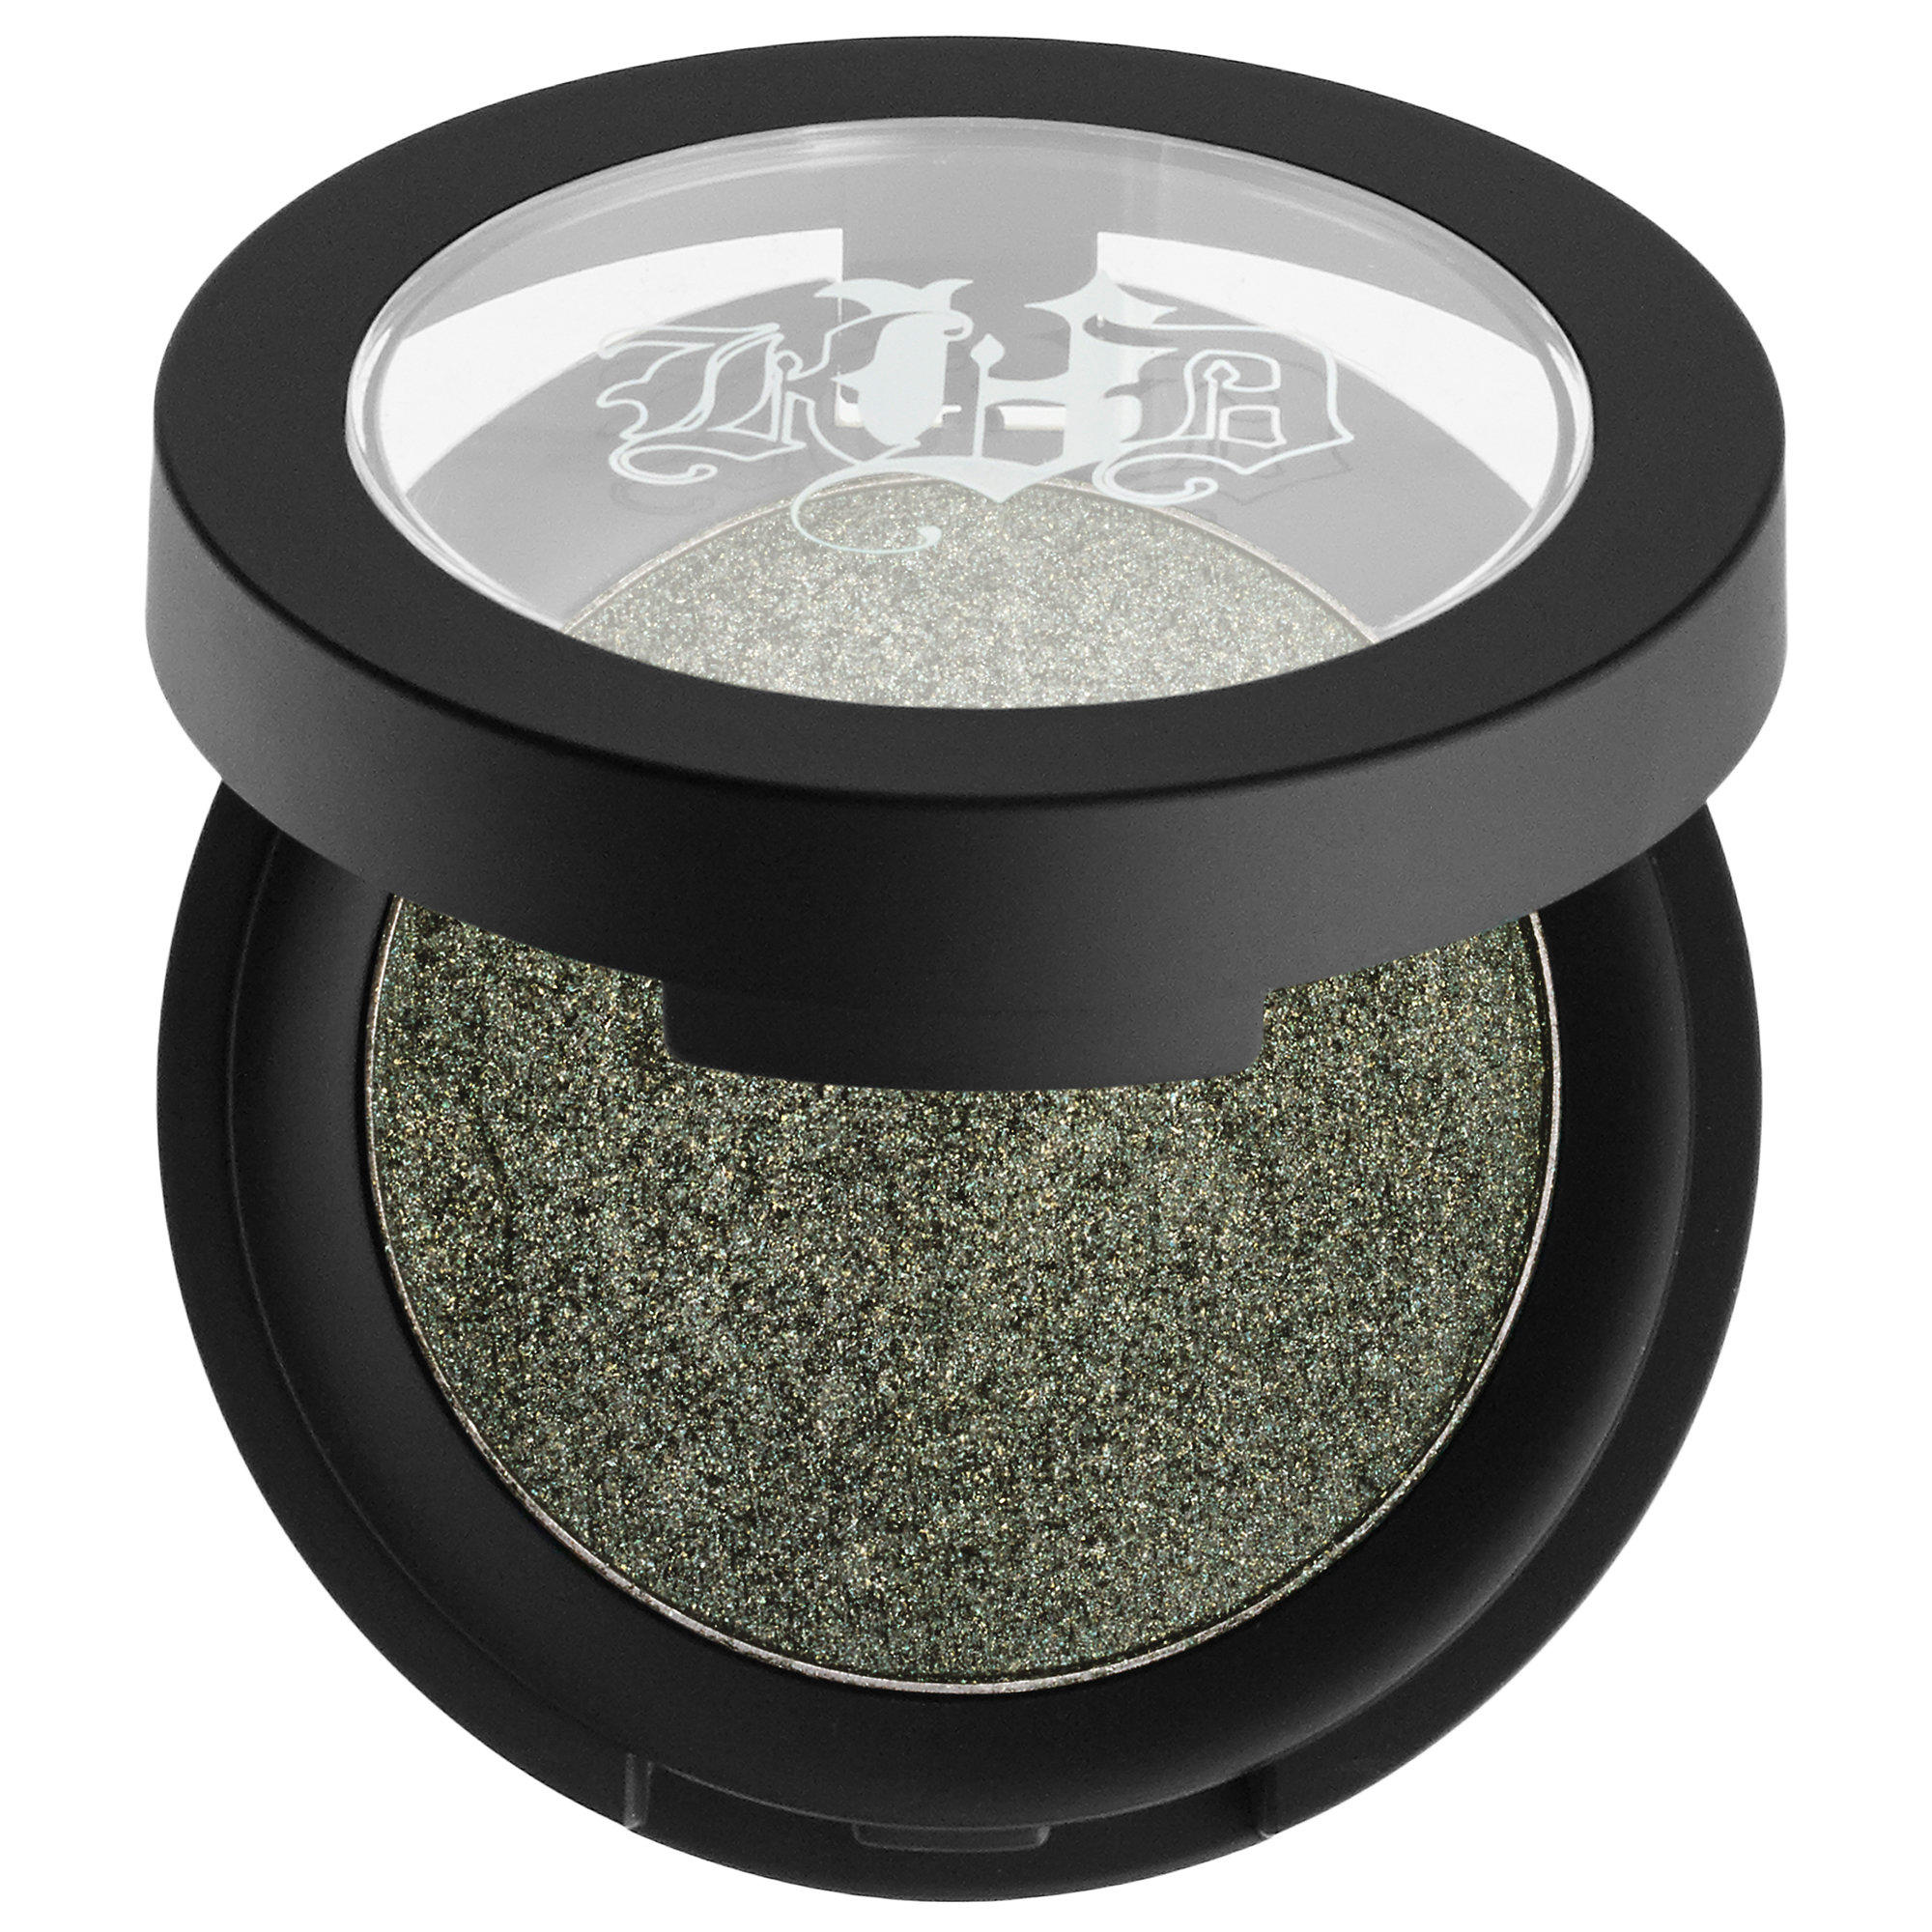 Kat Von D Metal Crush Eyeshadow Black No.1